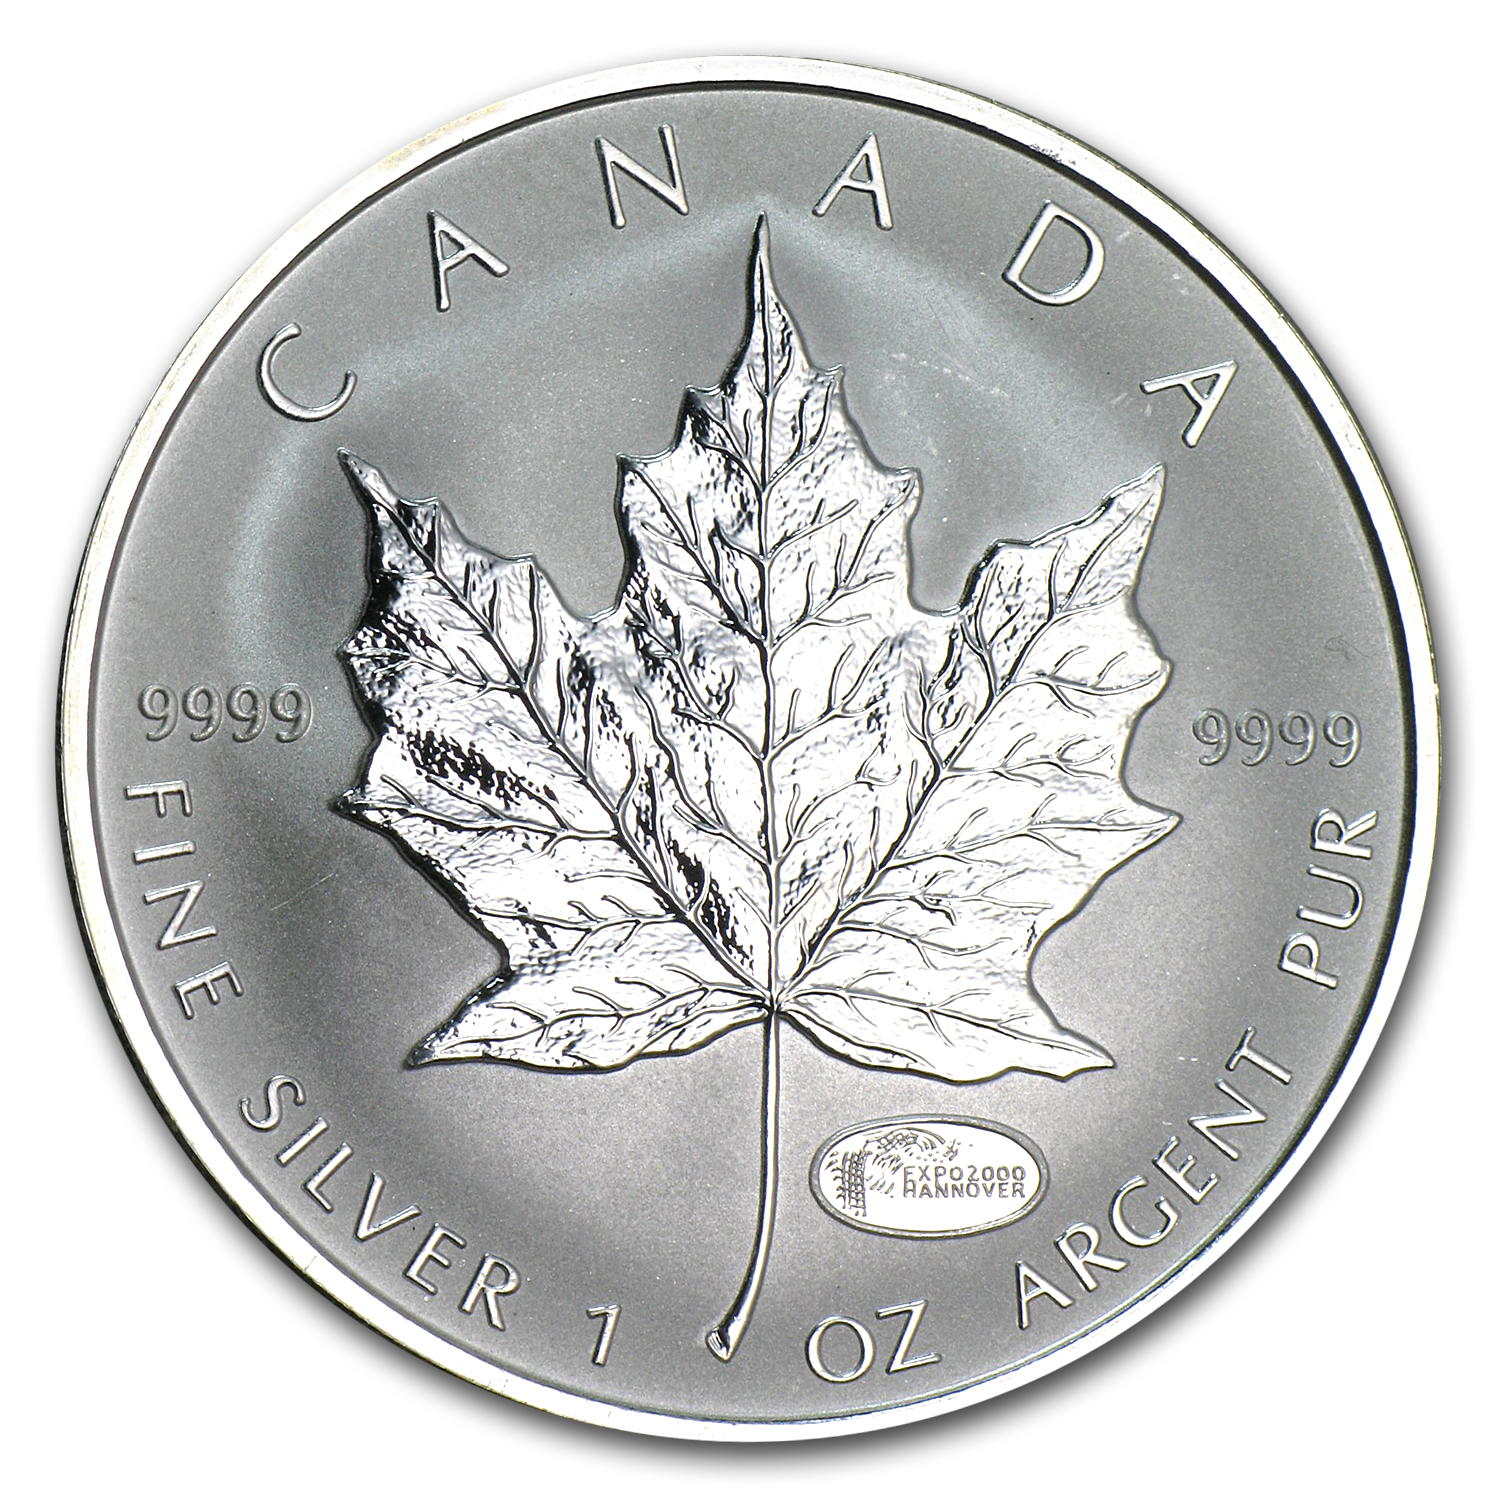 2000 Canada 1 oz Silver Maple Leaf Expo 2000 Hannover Privy